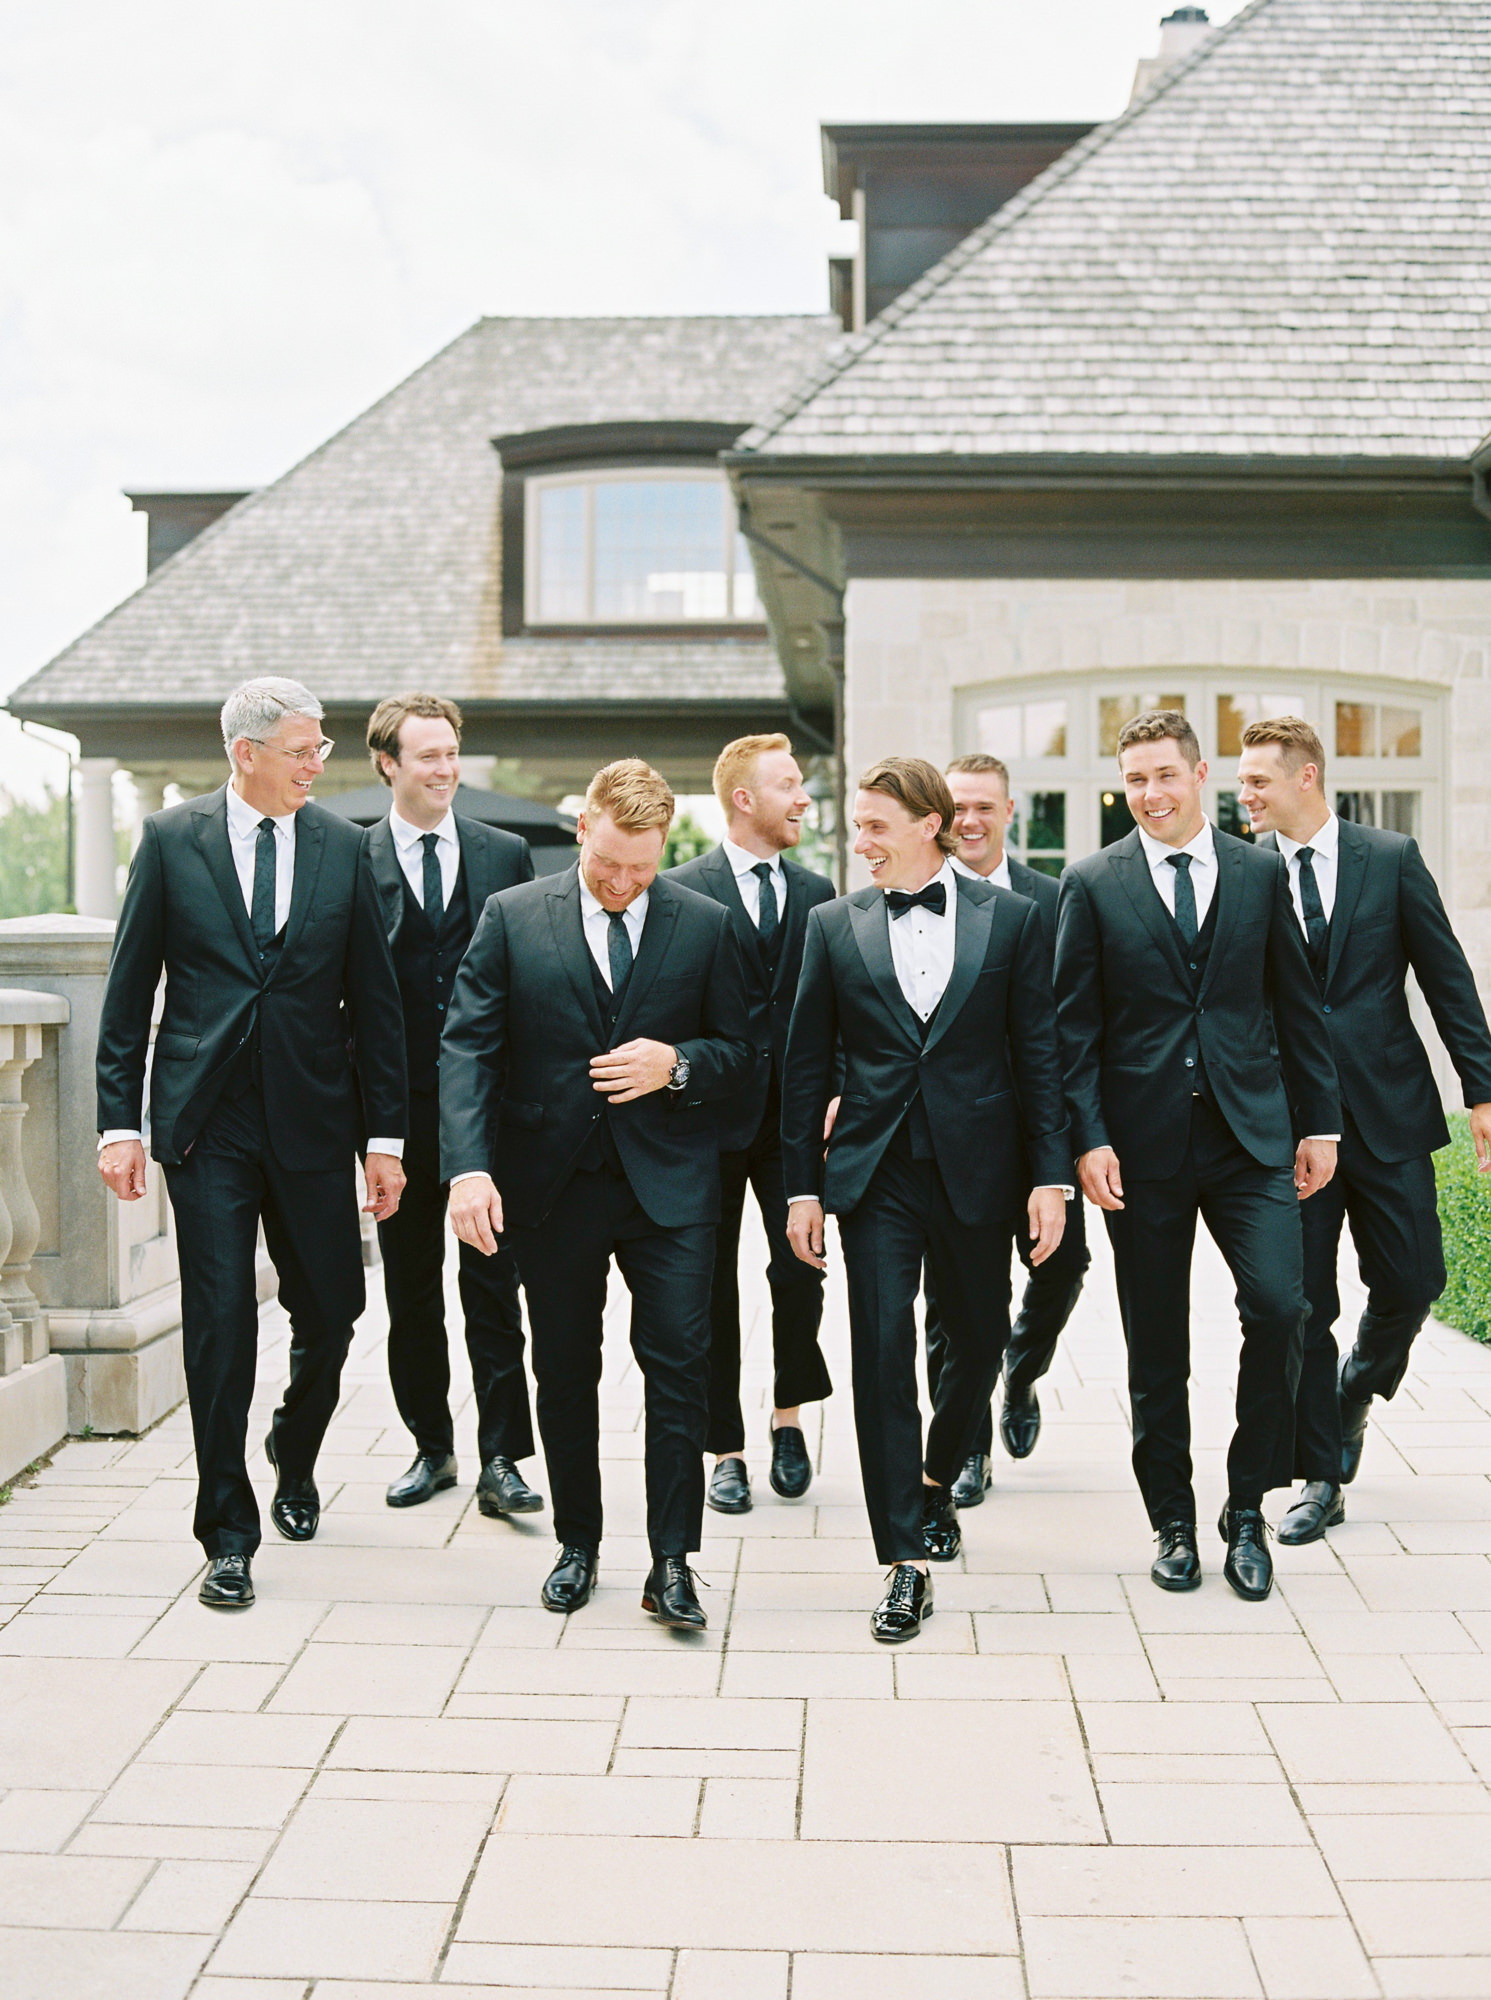 groom with groomsmen smiling all wearing black suits